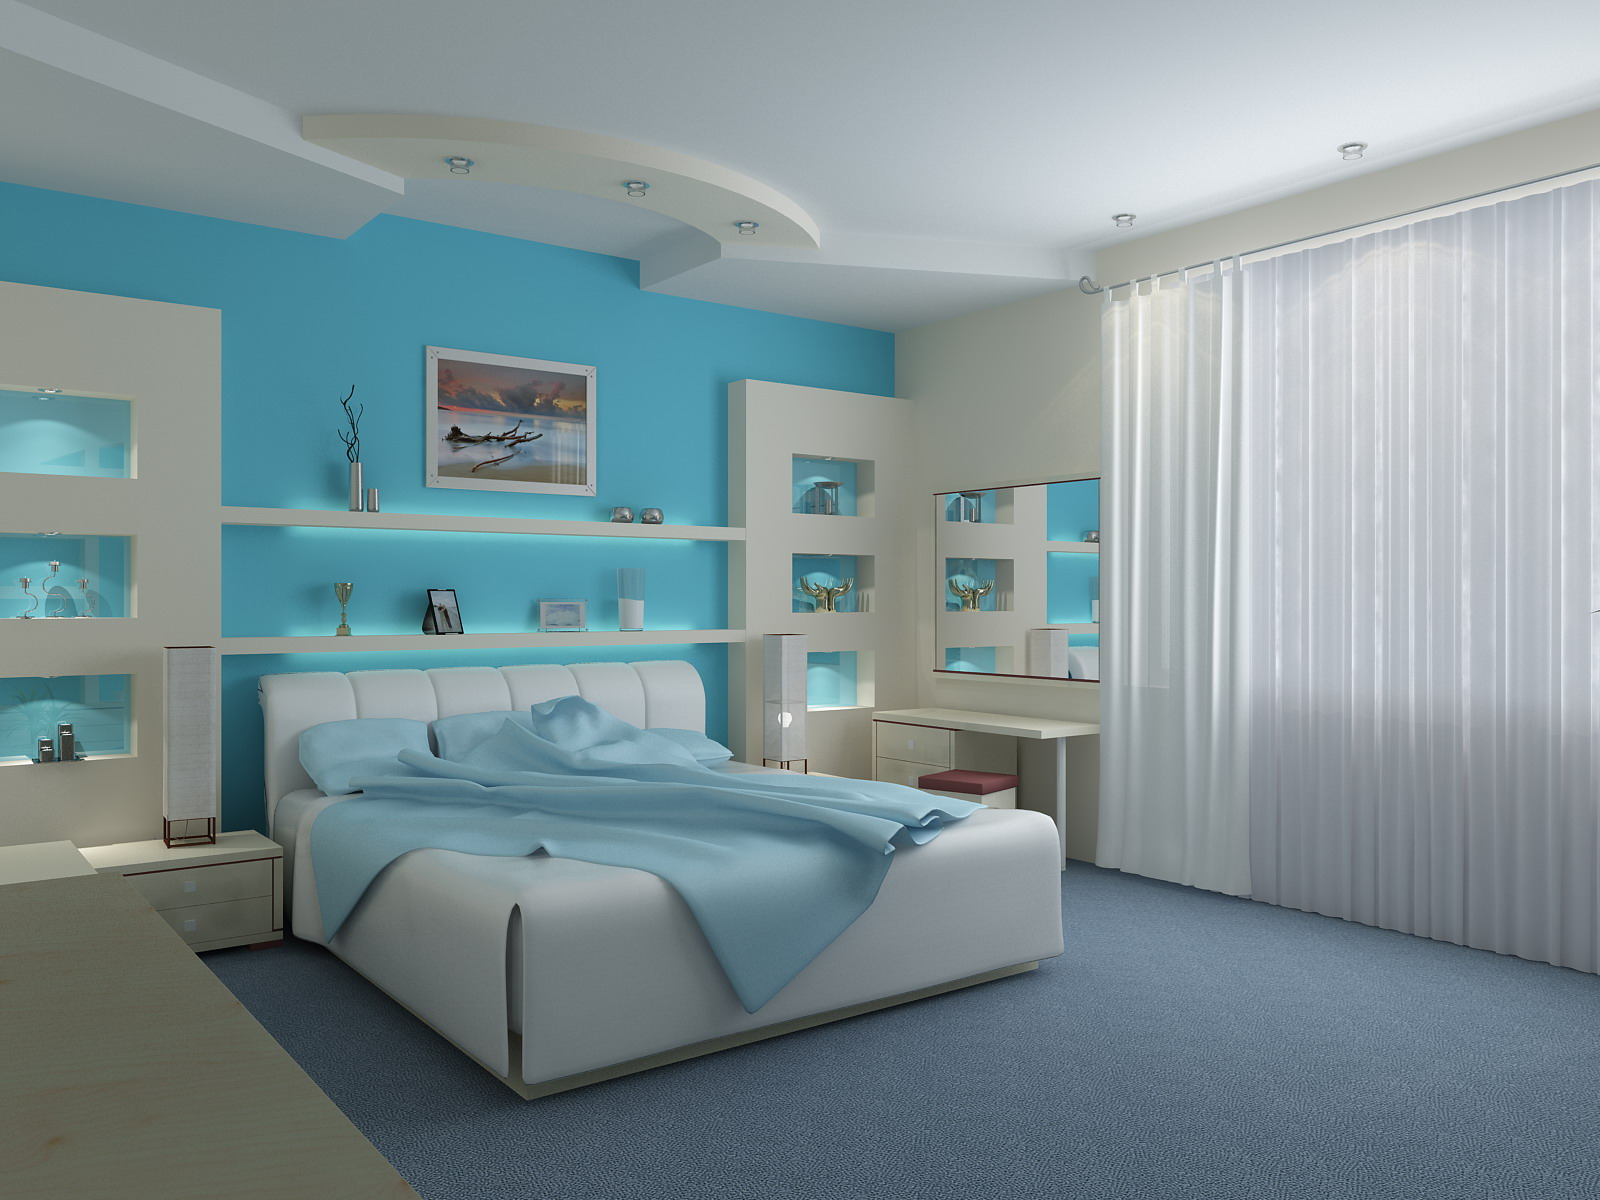 Bedroom pictures popular interior house ideas for Teenage bedroom designs